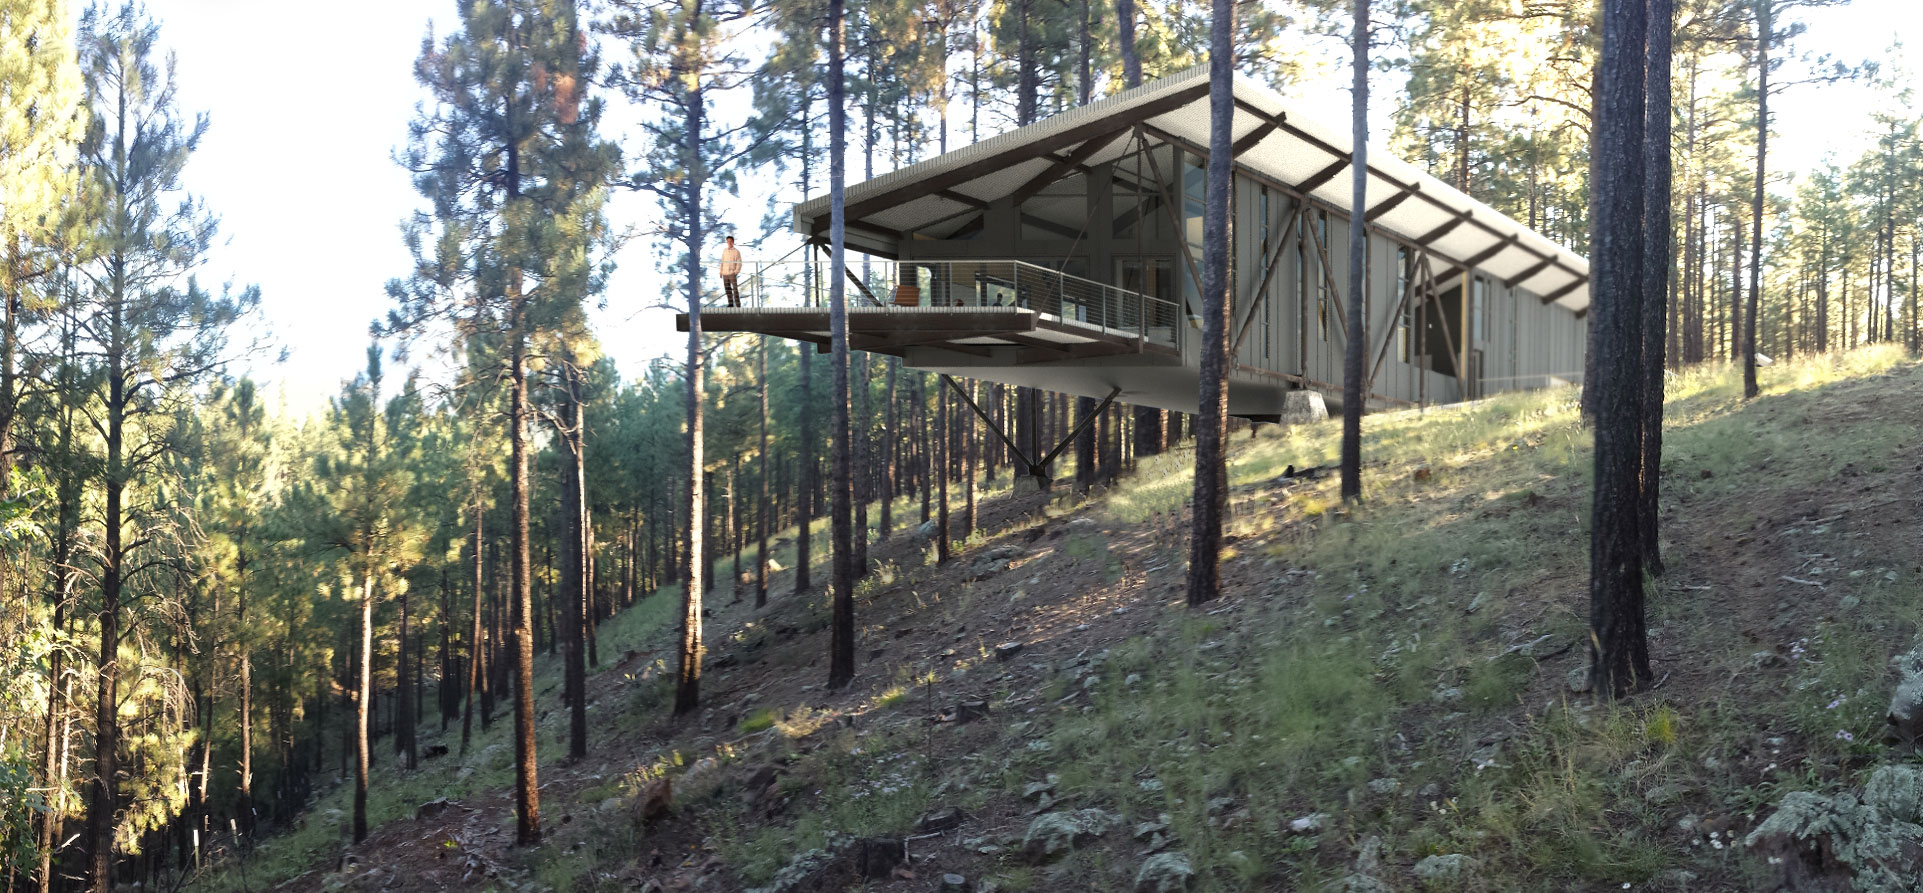 Treehouse truss domusstudio architecture for Architecture and design tree house